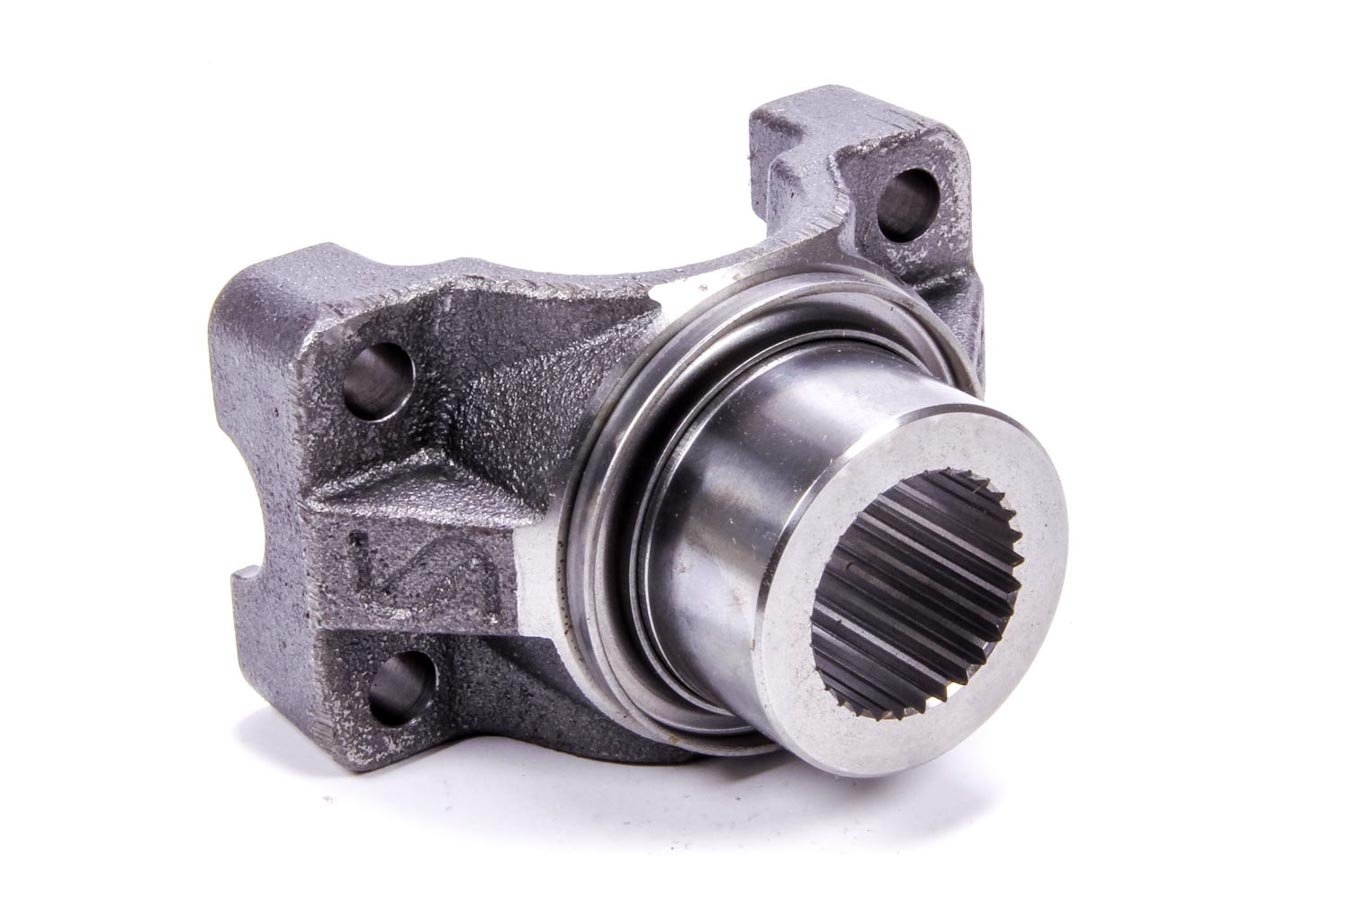 Strange Engineering U1600 1350 Series Pinion Yoke - Dana 60 with 29 Spline